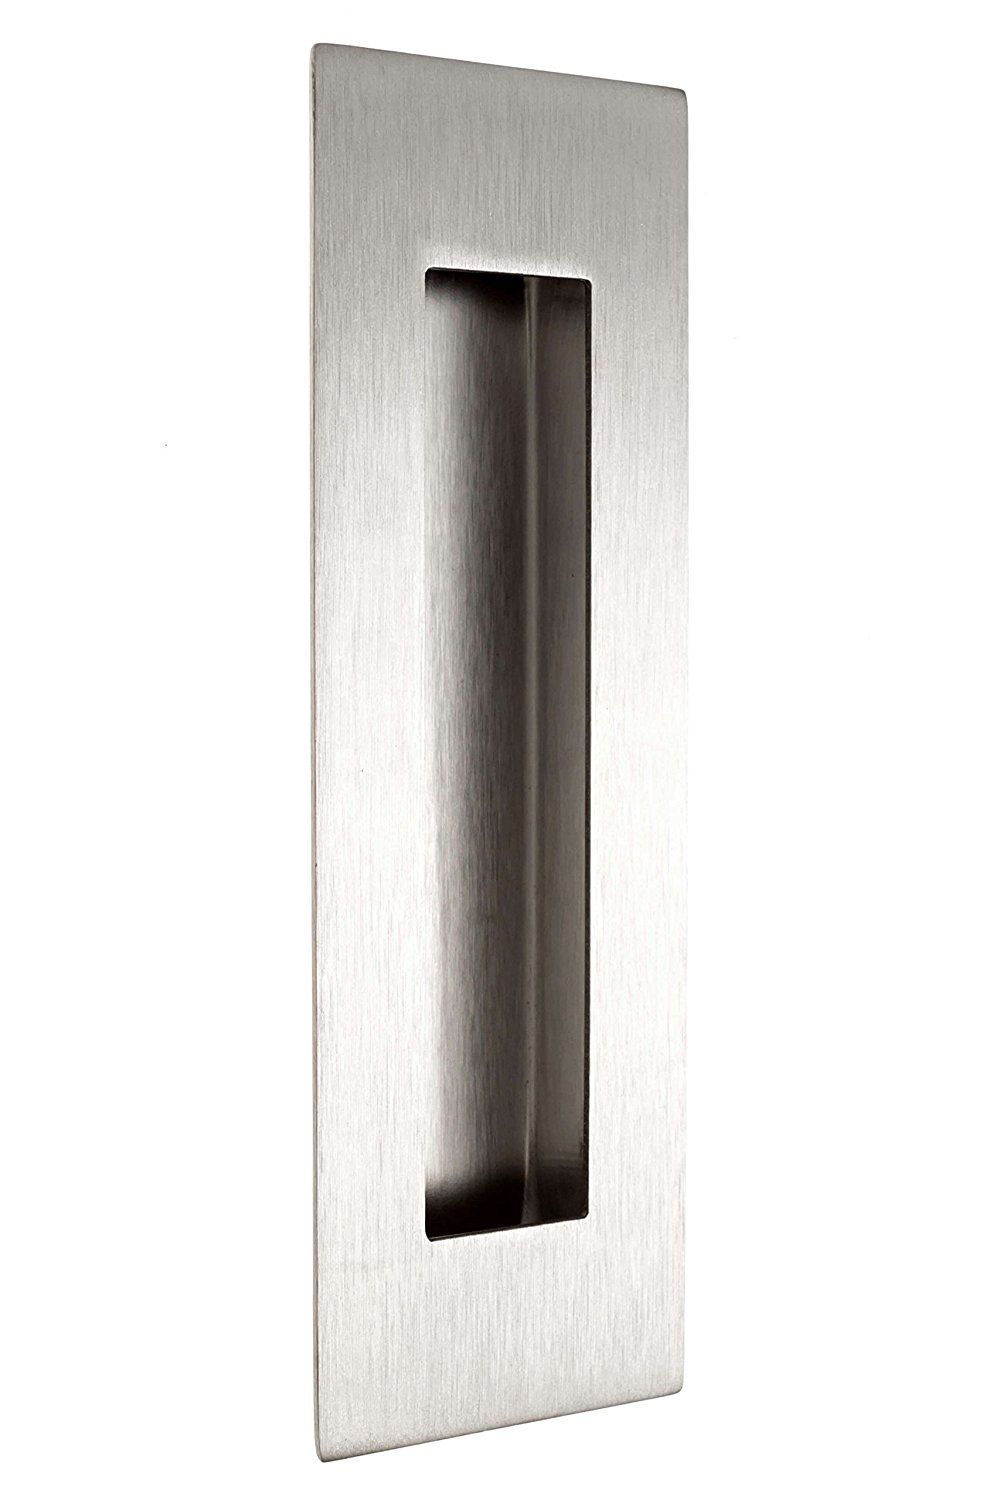 Flush Door Pull For Pocket Doors 2 Pack Recessed Finger Pulls Stainless Steel With Satin Finish 6 X 2 X 6 Includes Pocket Doors Sliding Doors Flush Doors